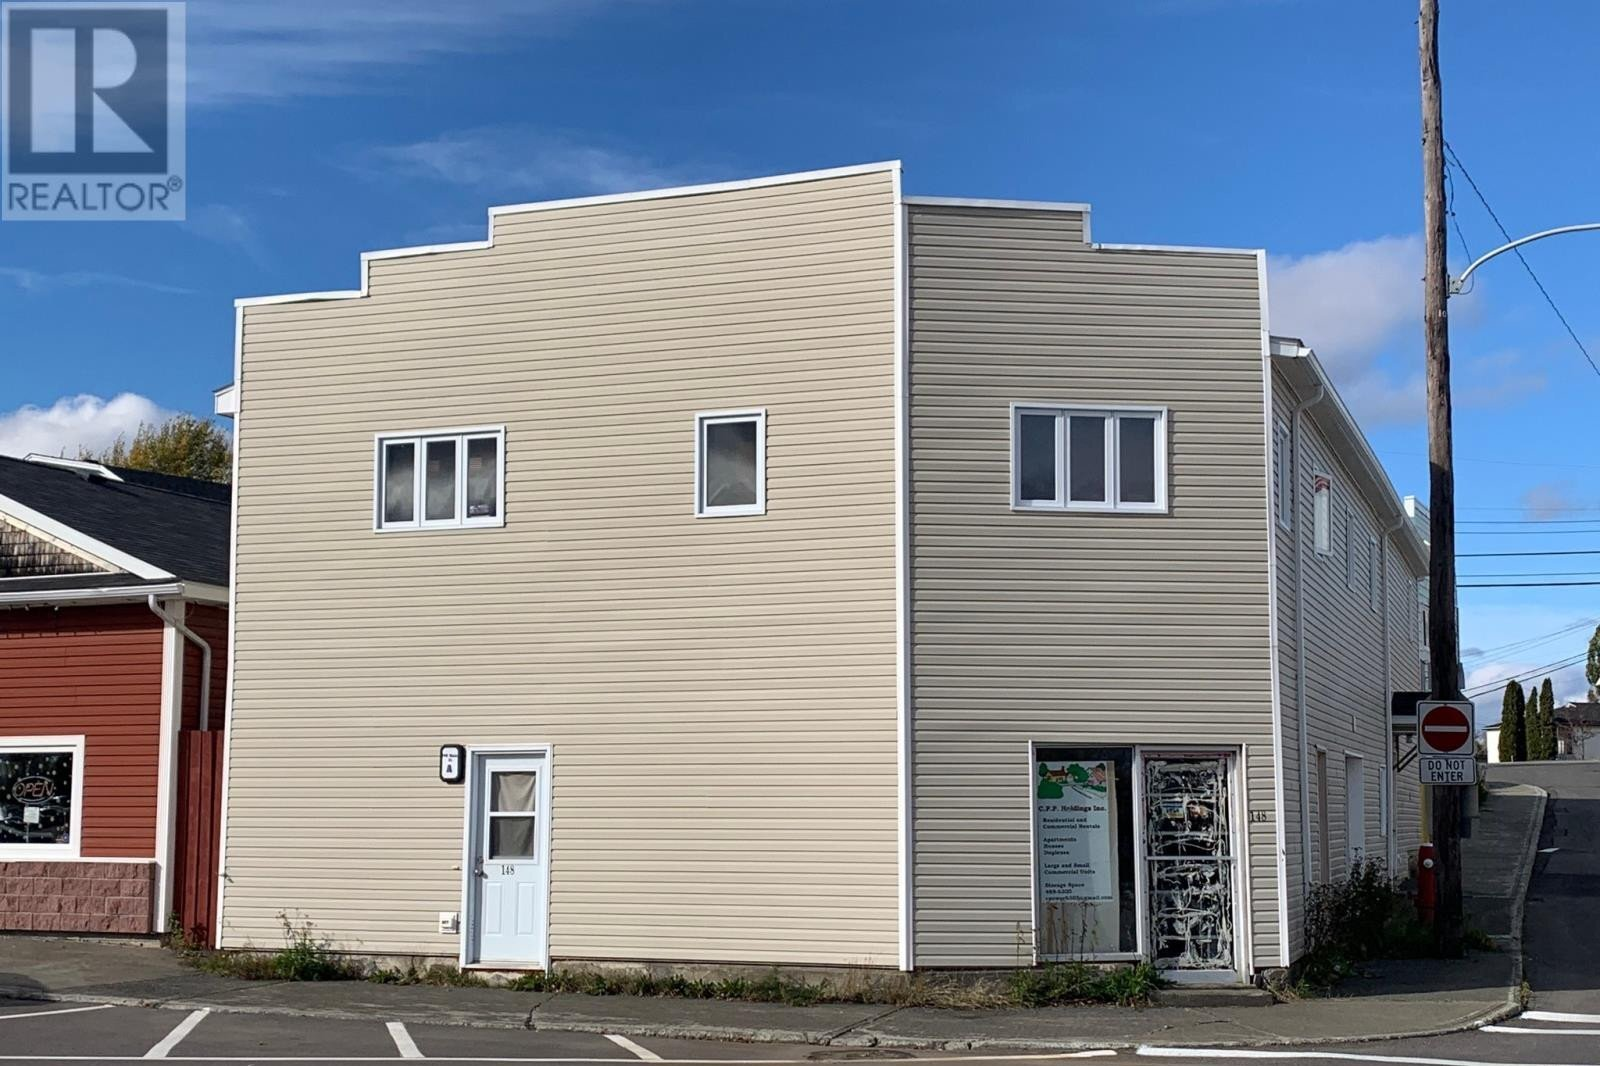 House for sale at 148 Main St Grand Falls-windsor Newfoundland - MLS: 1222782